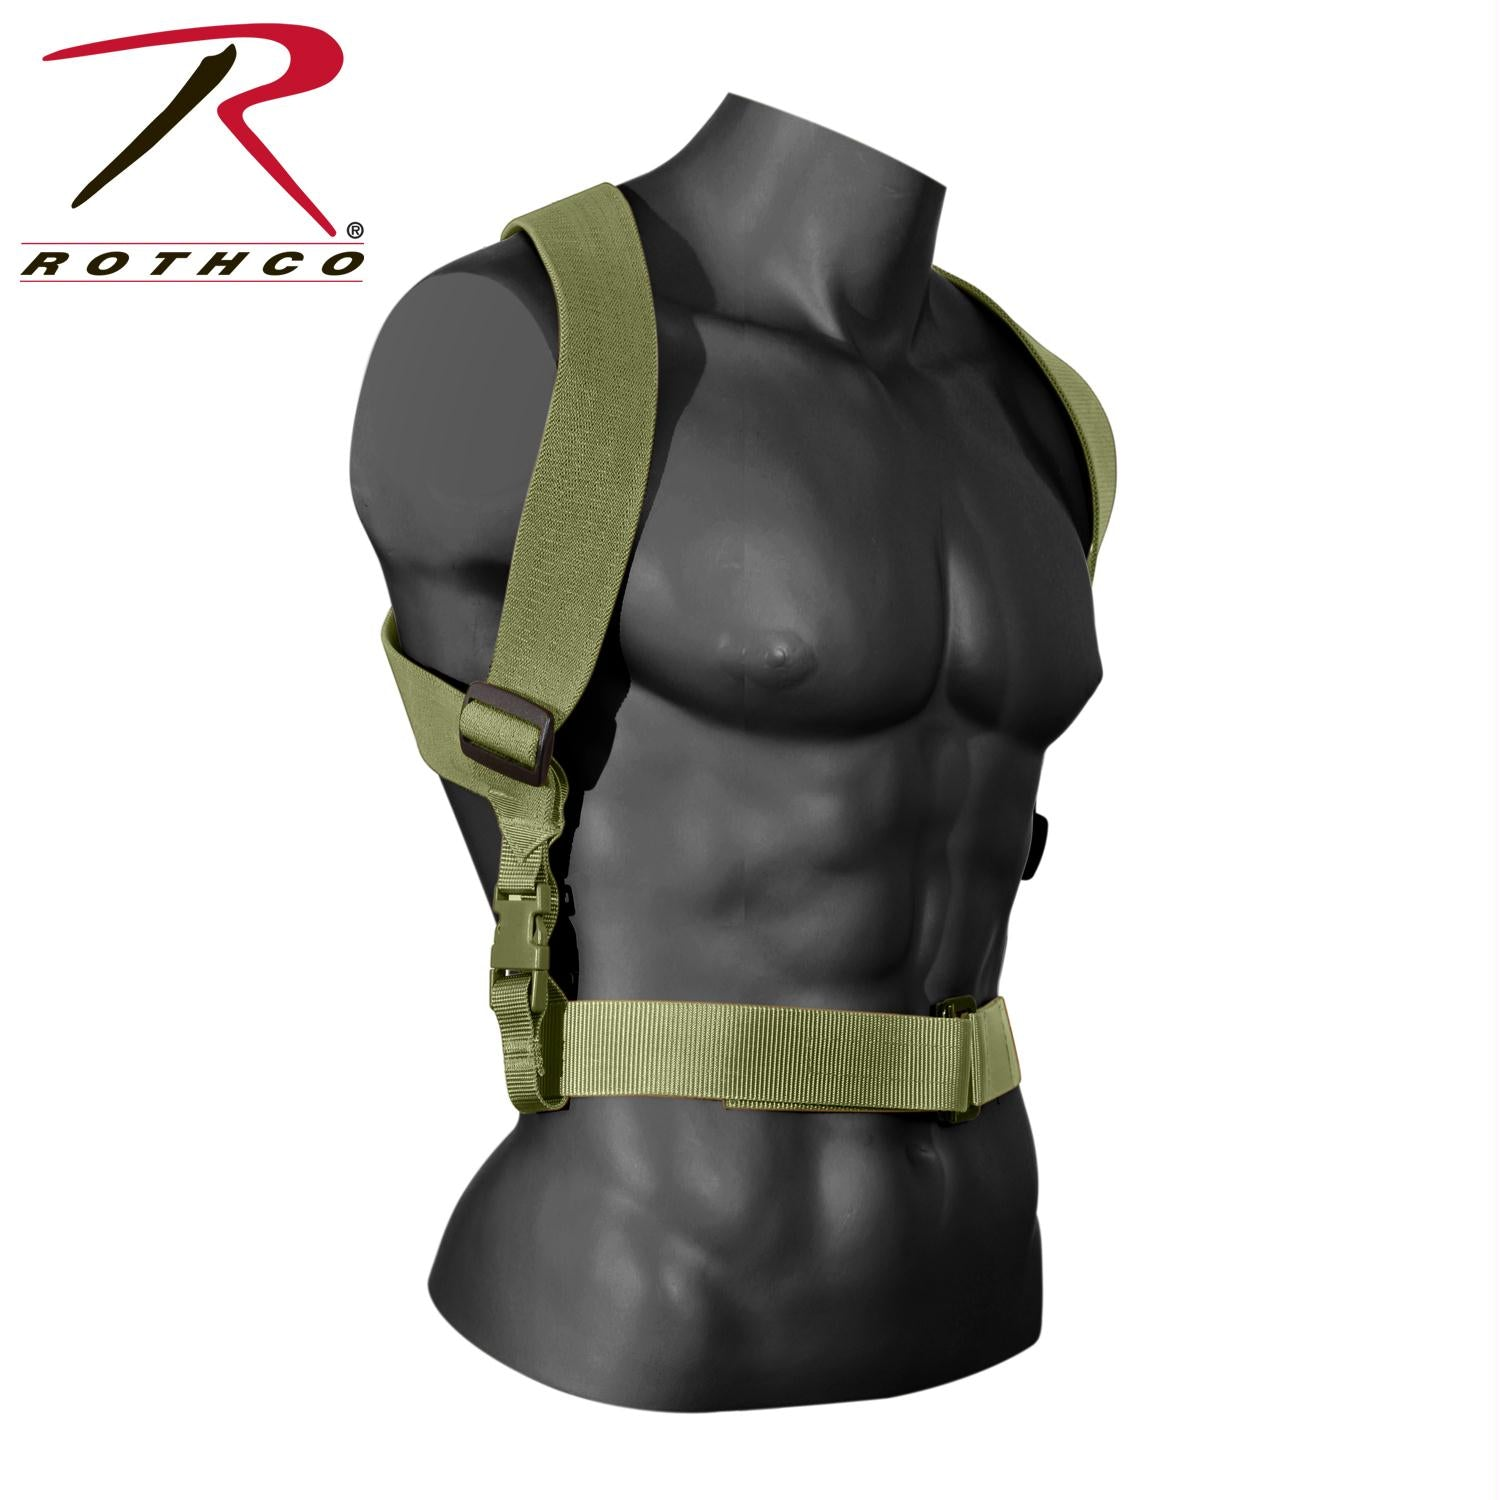 Rothco Combat Suspenders - Olive Drab